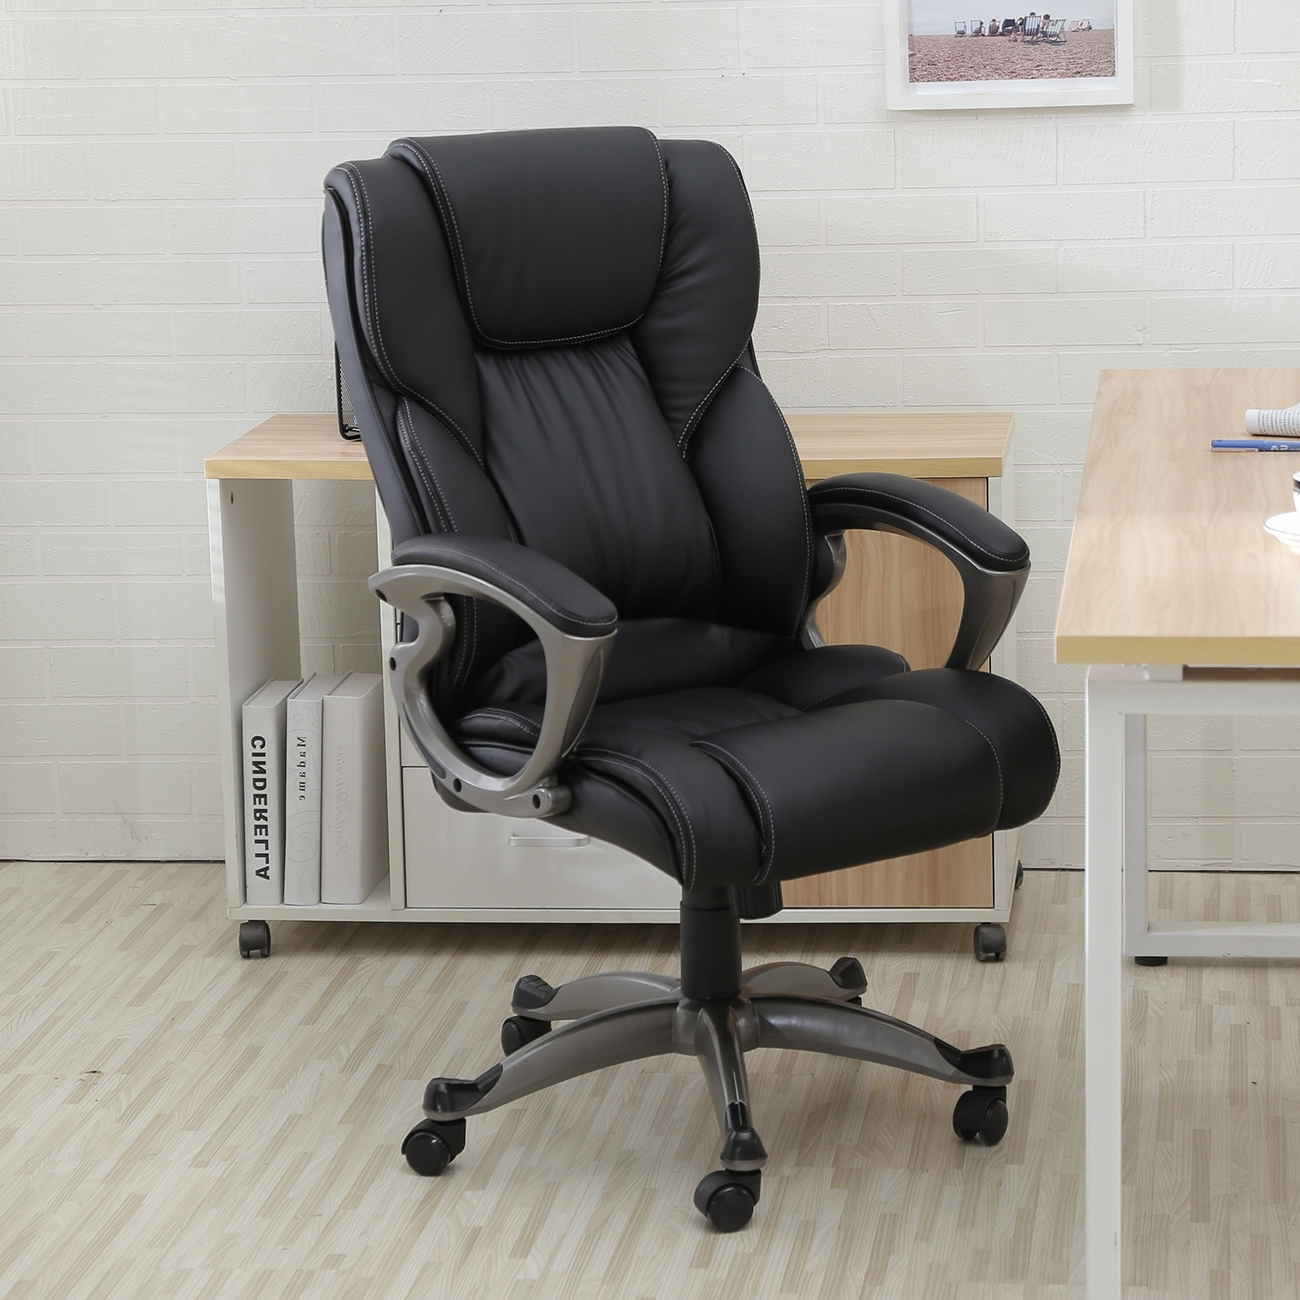 Popular Belleze High Back Executive Faux Leather Office Chair, Black Pertaining To High Back Executive Office Chairs (View 16 of 20)